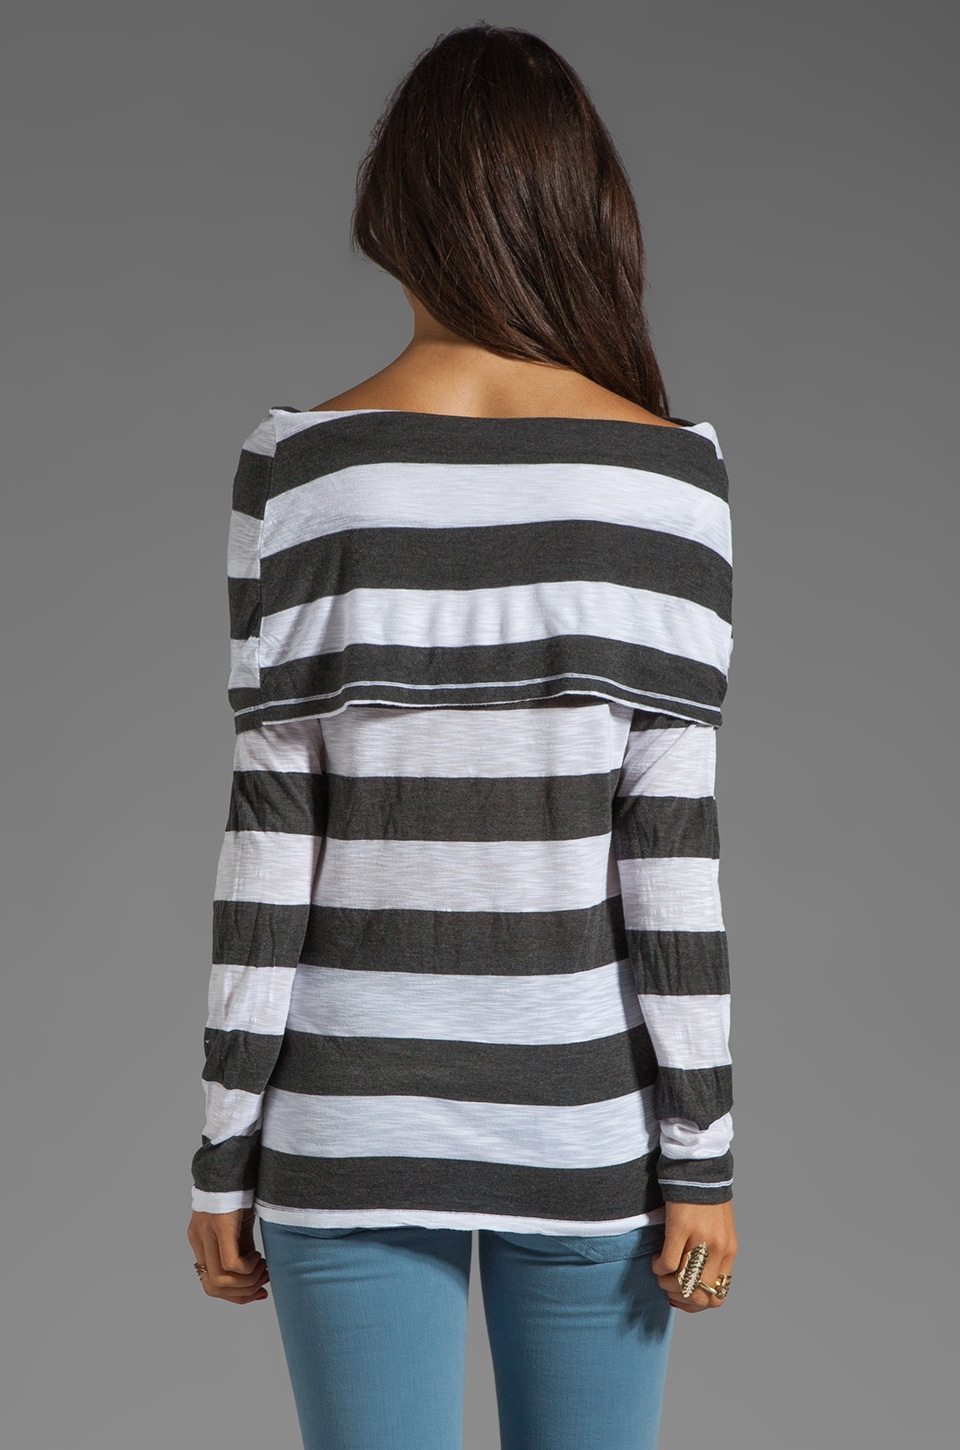 Market Charcoal Stripe Elsa Top in White